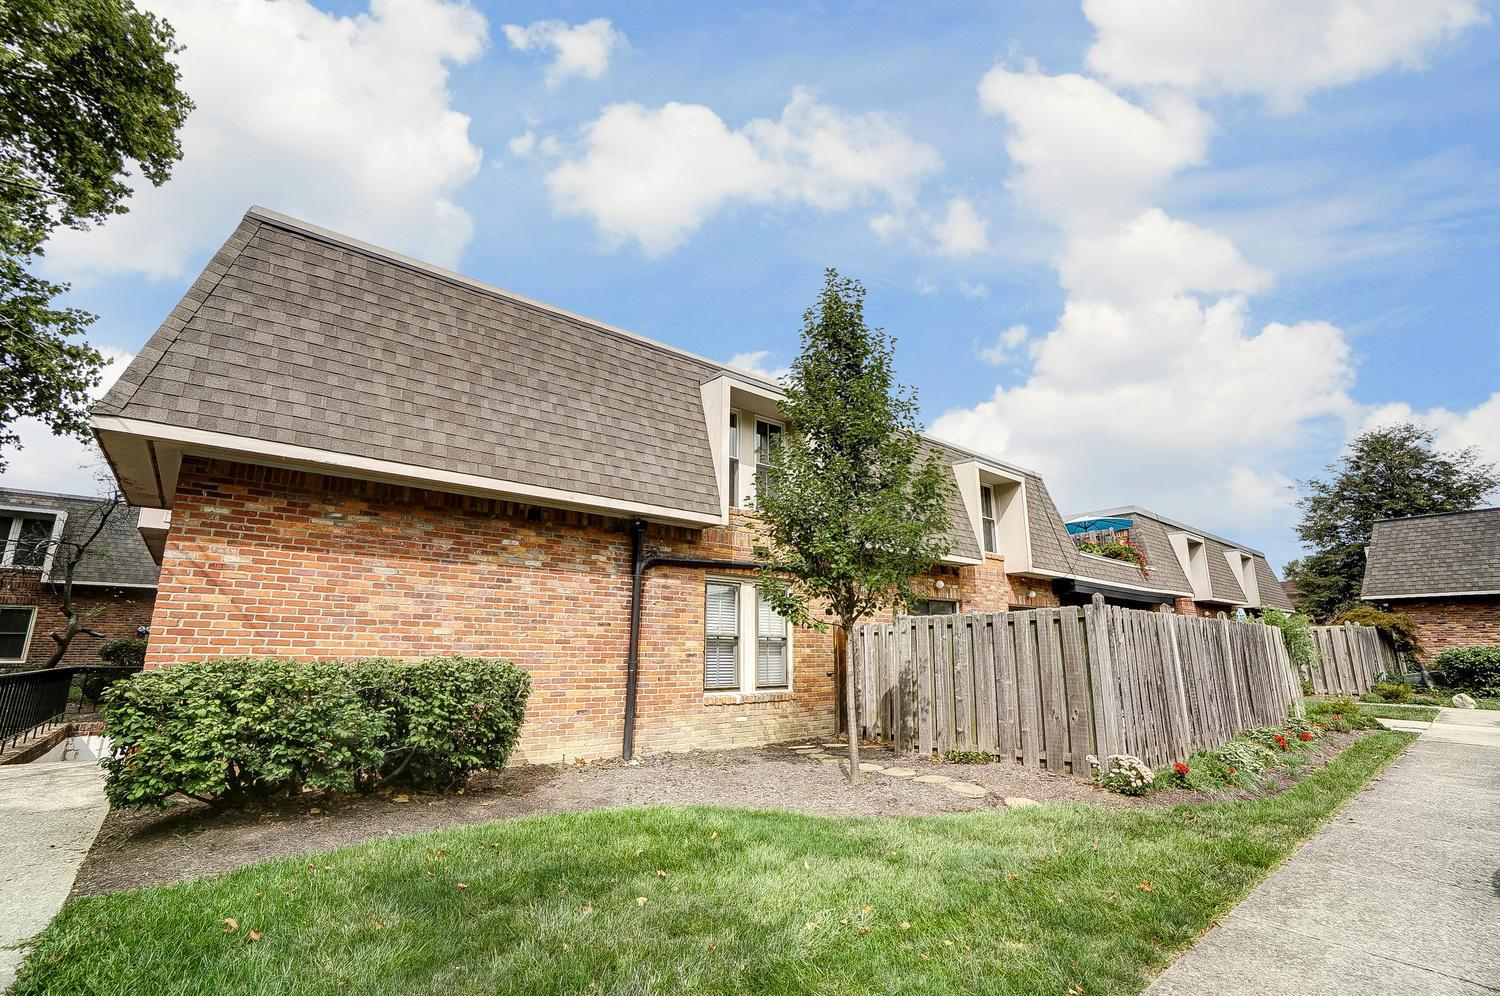 1504 Lafayette Drive, Columbus, Ohio 43220, 3 Bedrooms Bedrooms, ,2 BathroomsBathrooms,Residential,For Sale,Lafayette,220032232